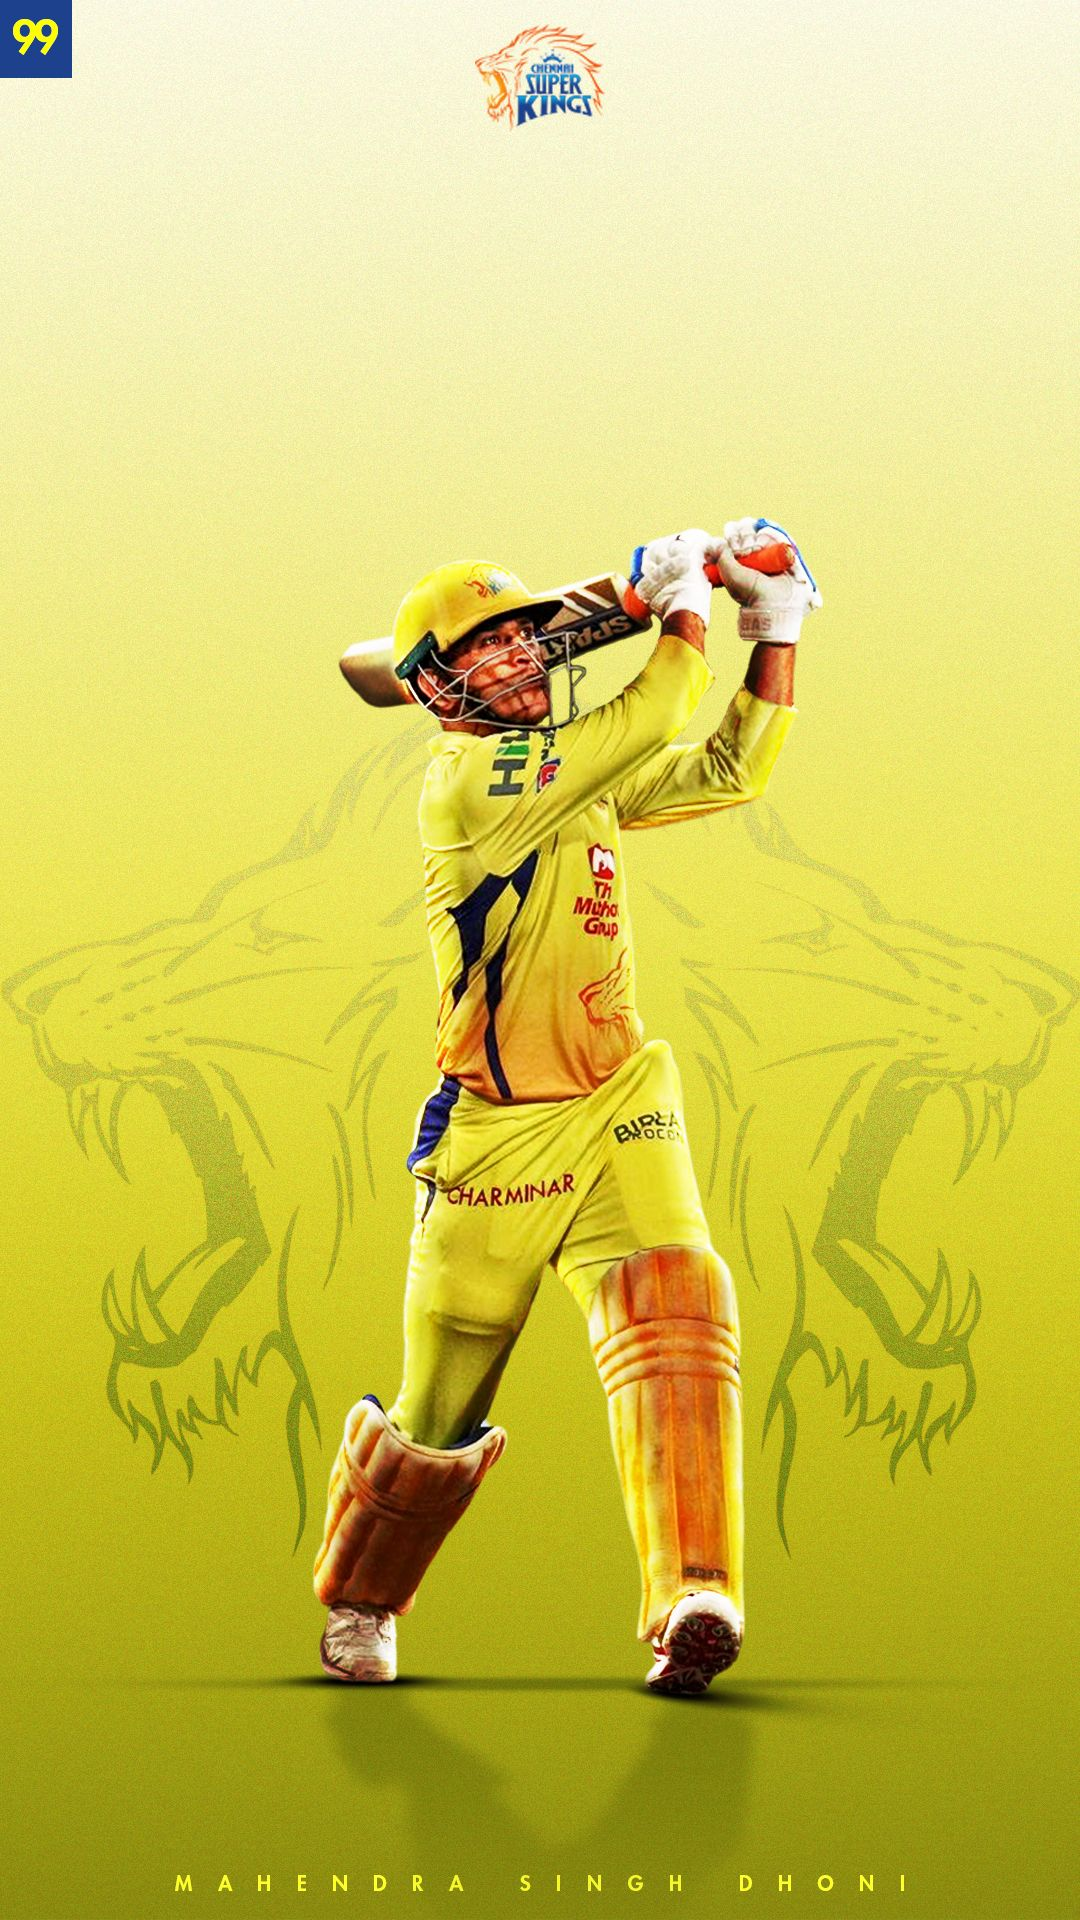 csk wallpapers logo csk wallpapers / csk wallpapers